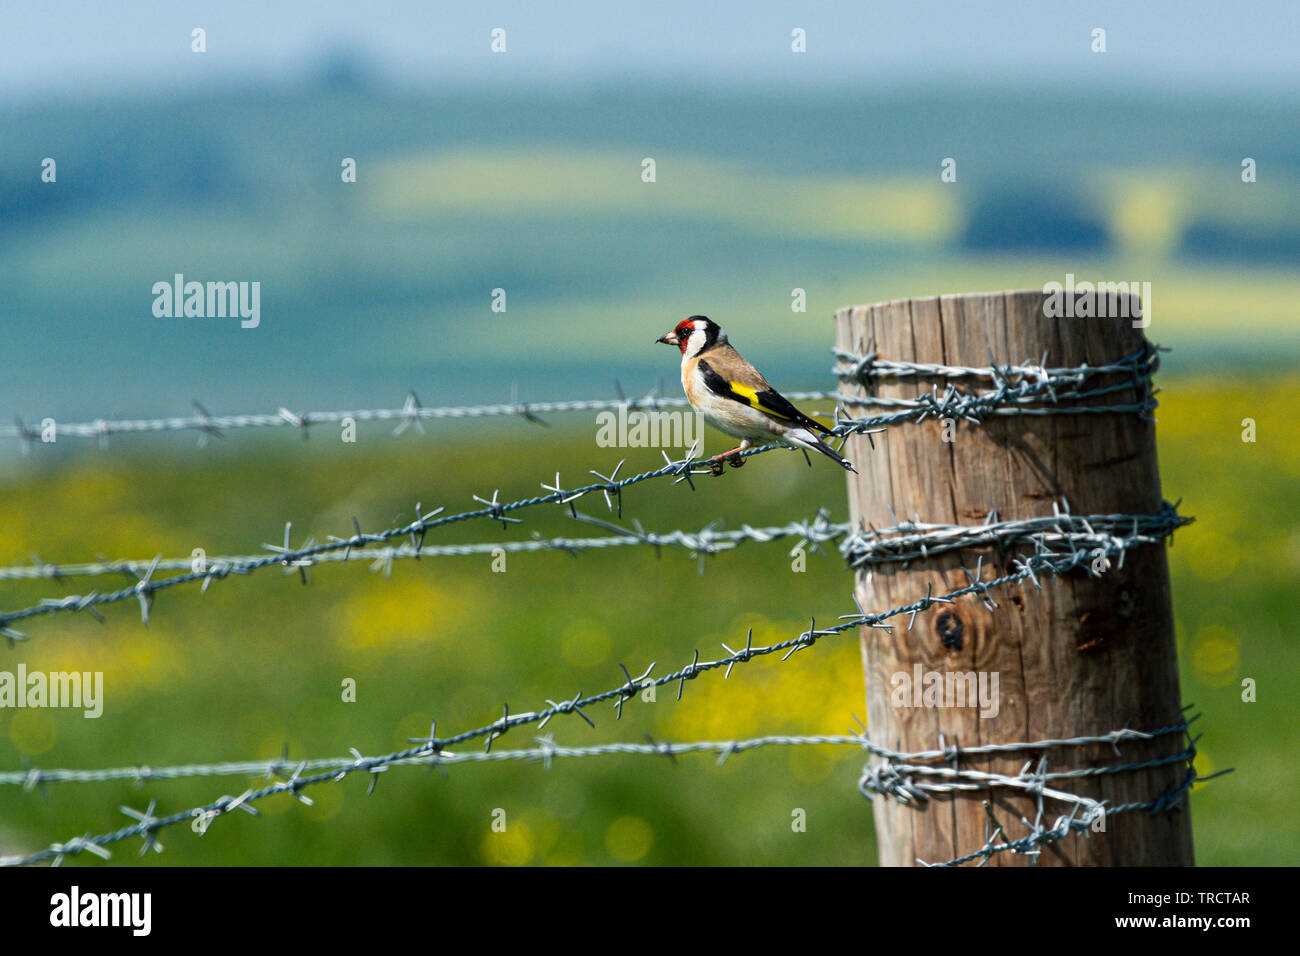 A goldfinch (Carduelis carduelis) perched on a barbed wire fence - Stock Image